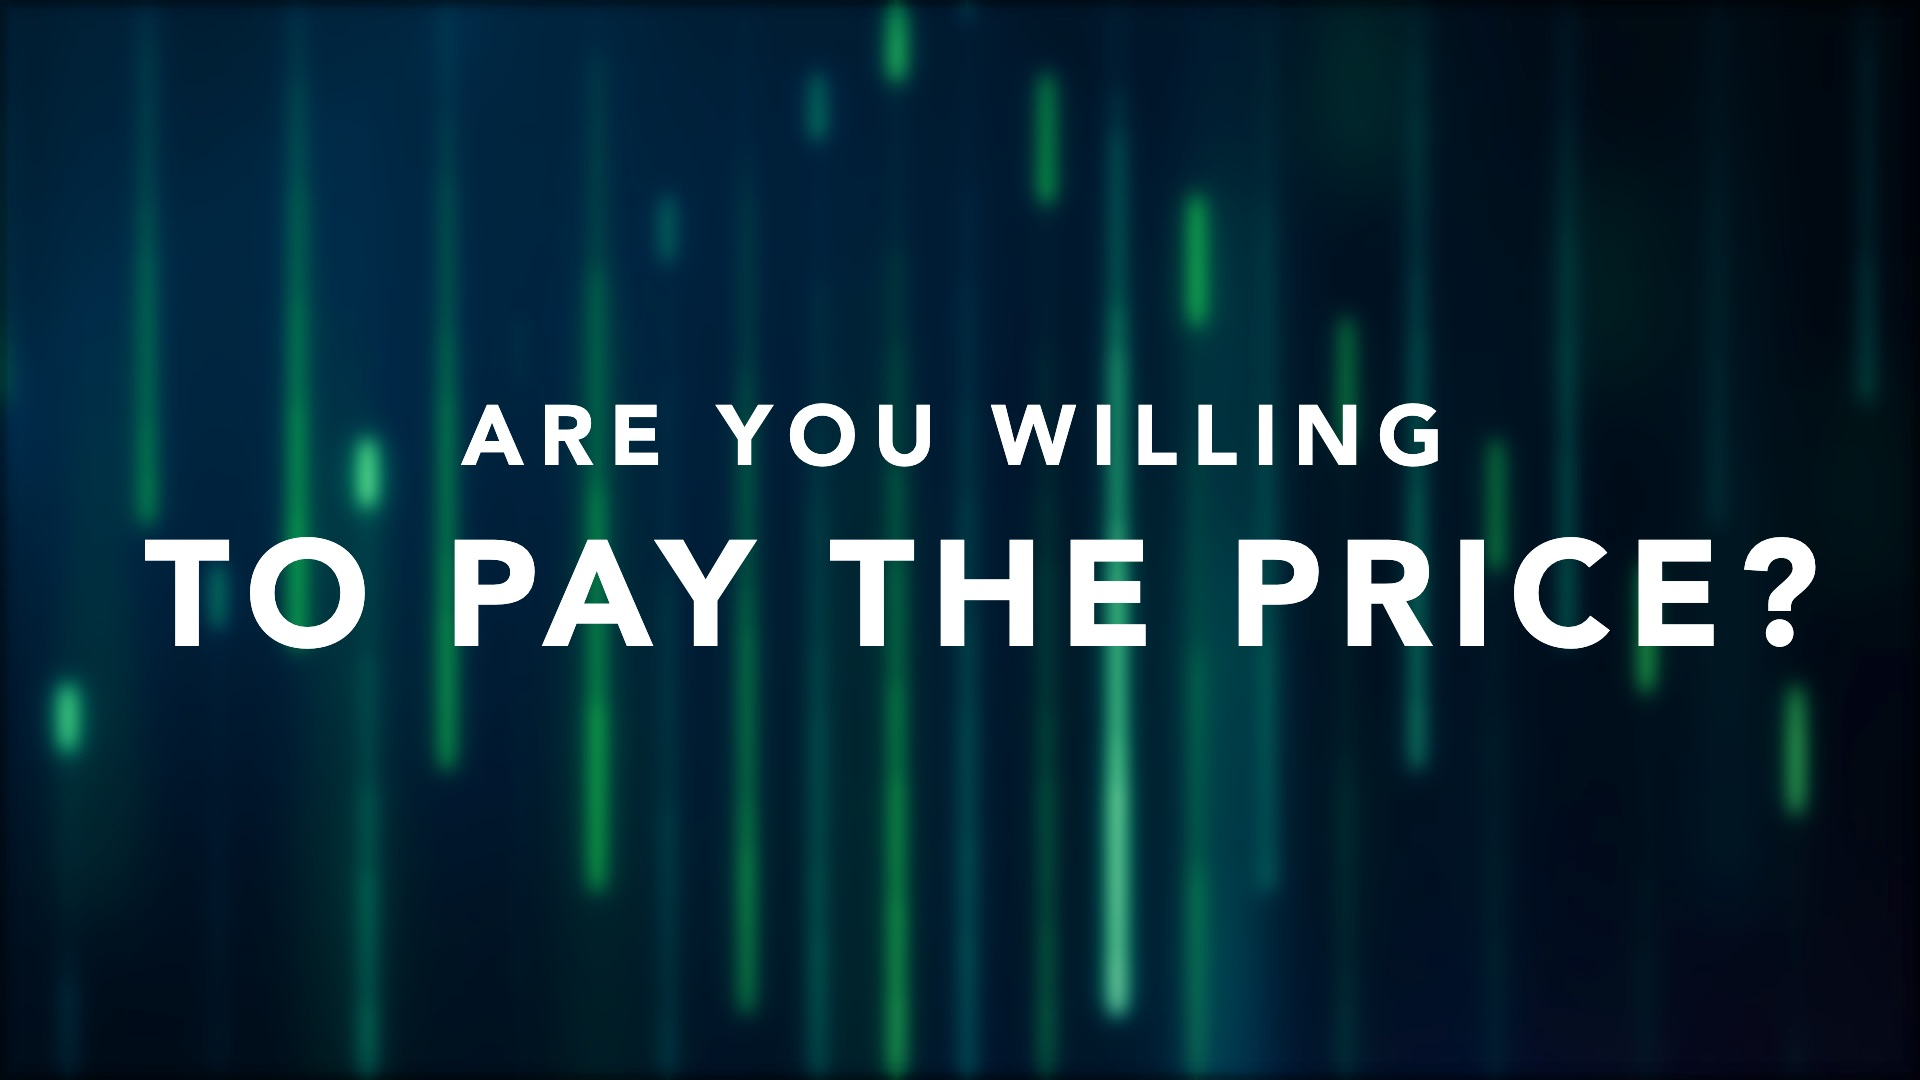 Are You Willing To Pay The Price?